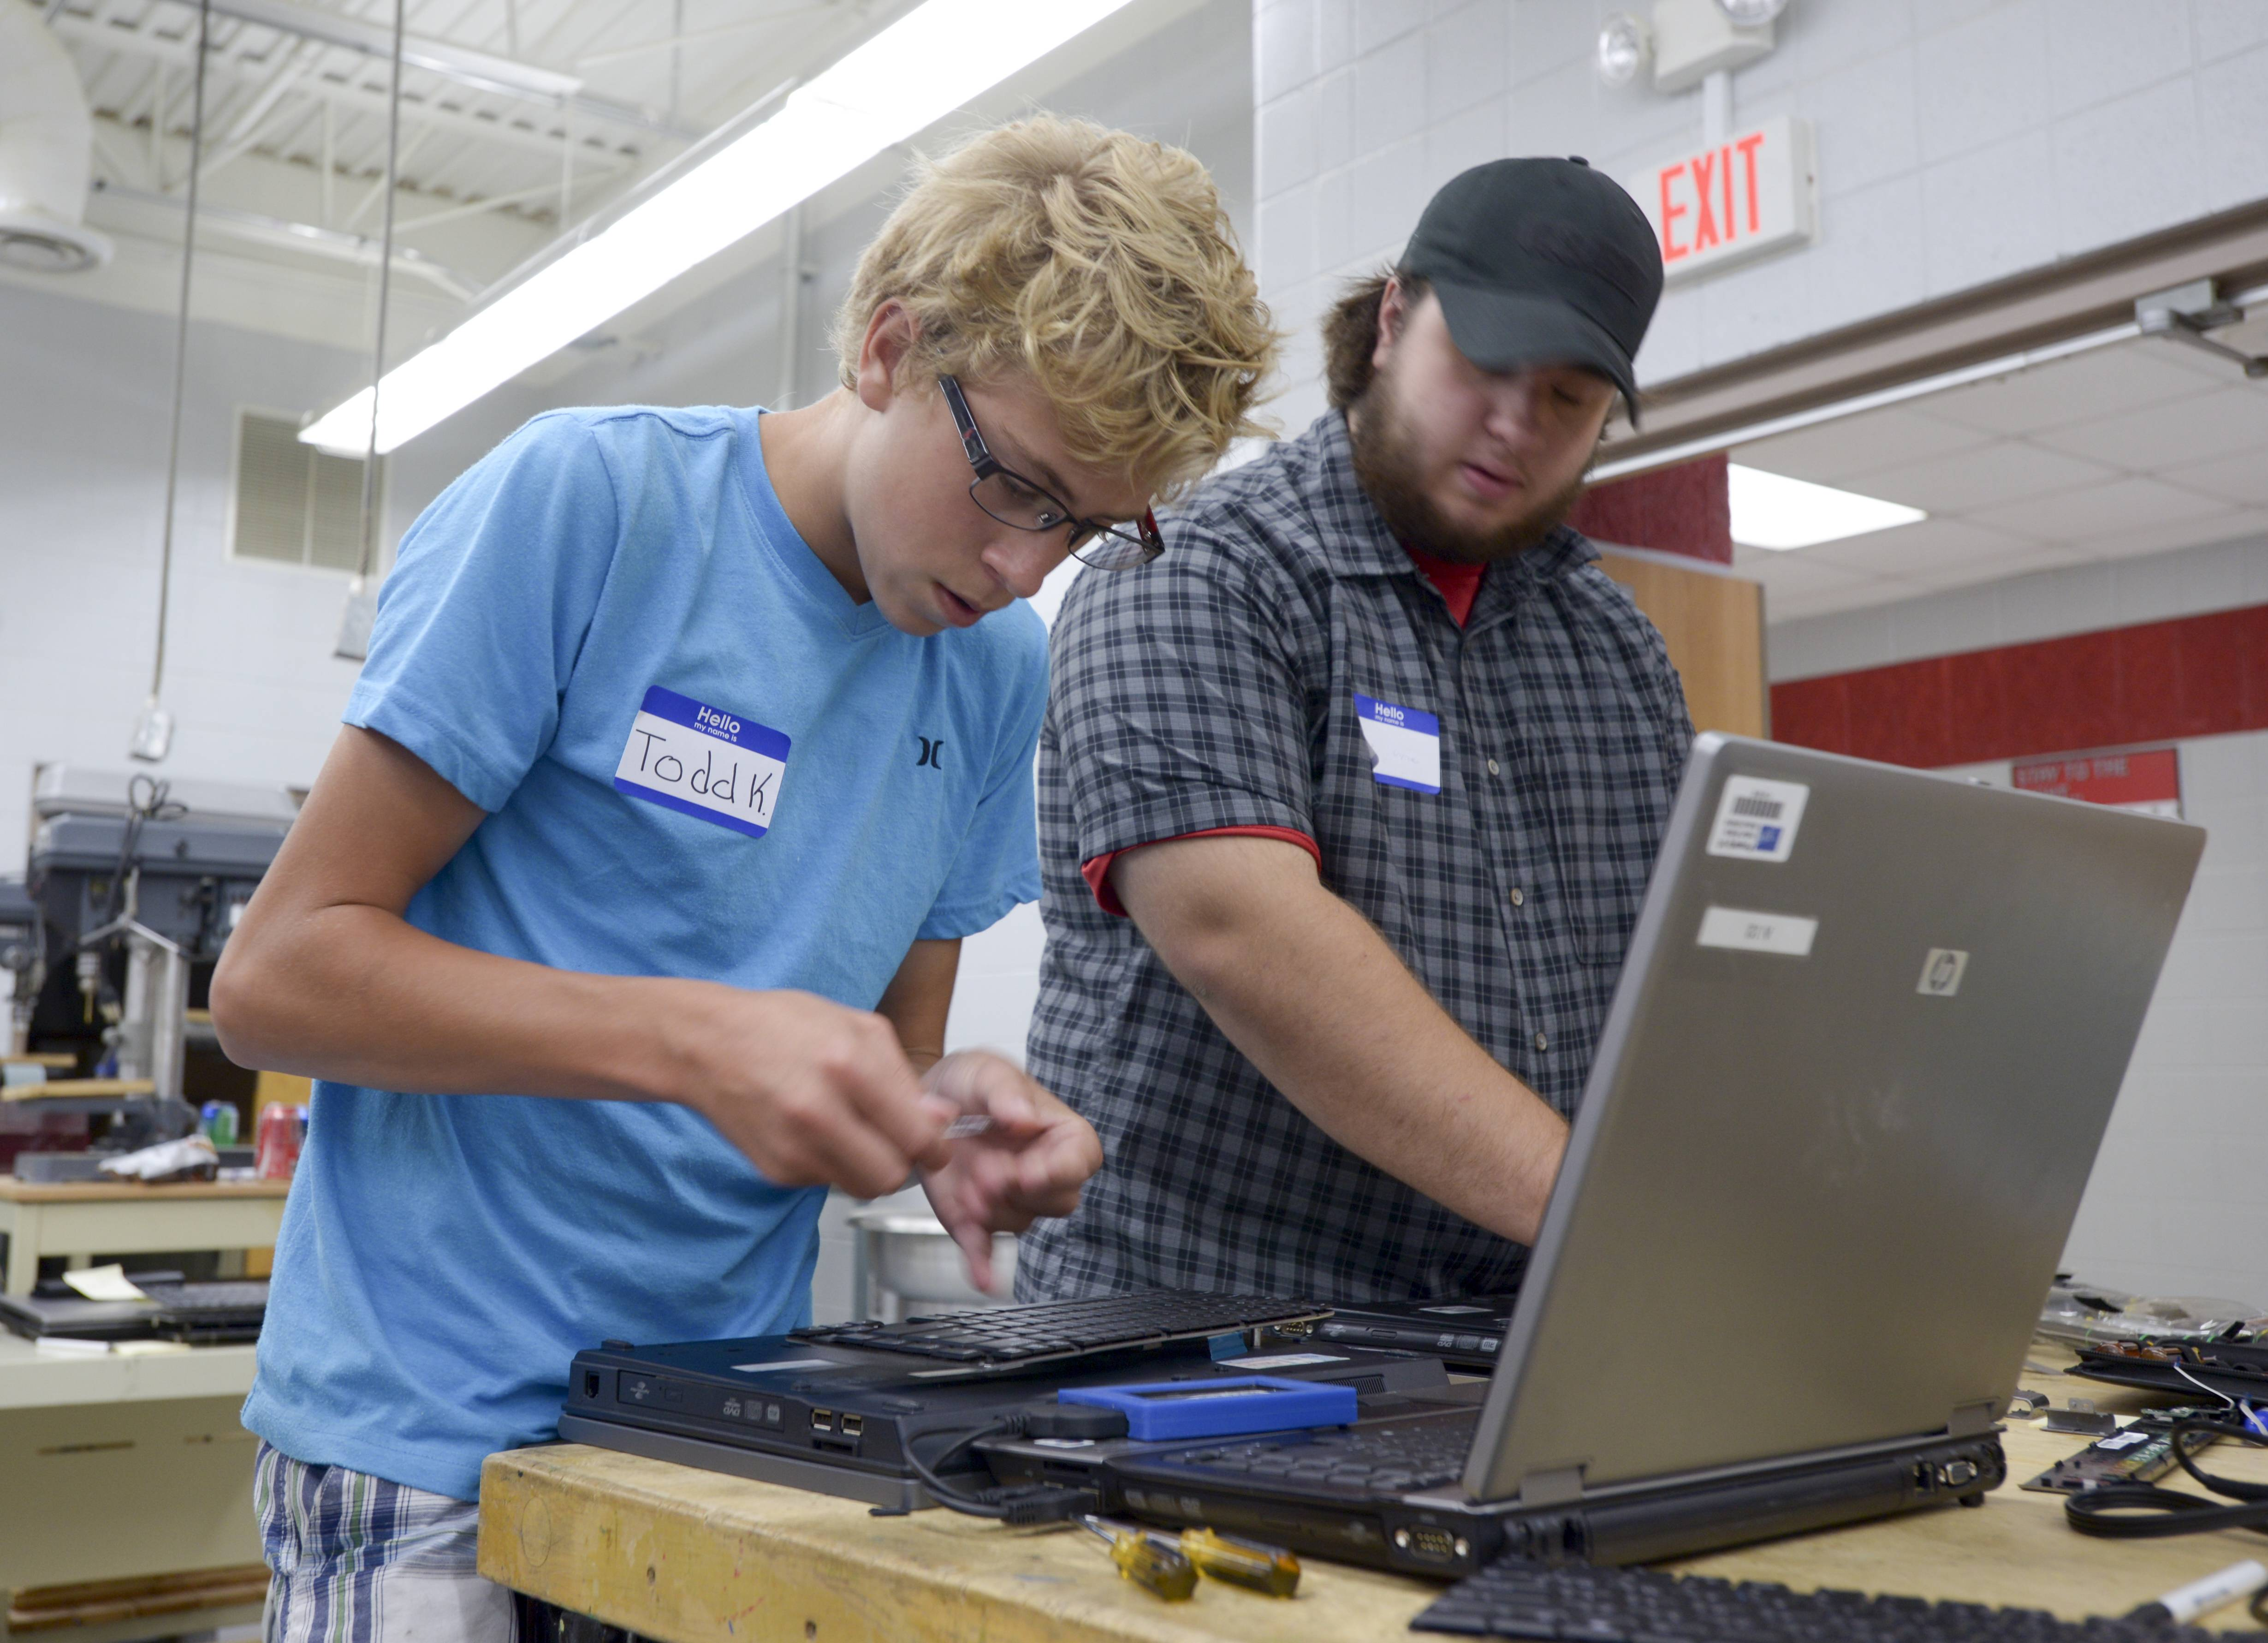 Todd Kuebelbeck, 15, of Naperville and College of DuPage student Kurt Lyne work Tuesday to refurbish laptops no longer in use in Indian Prairie Unit District 204 so they can be given to students in need.